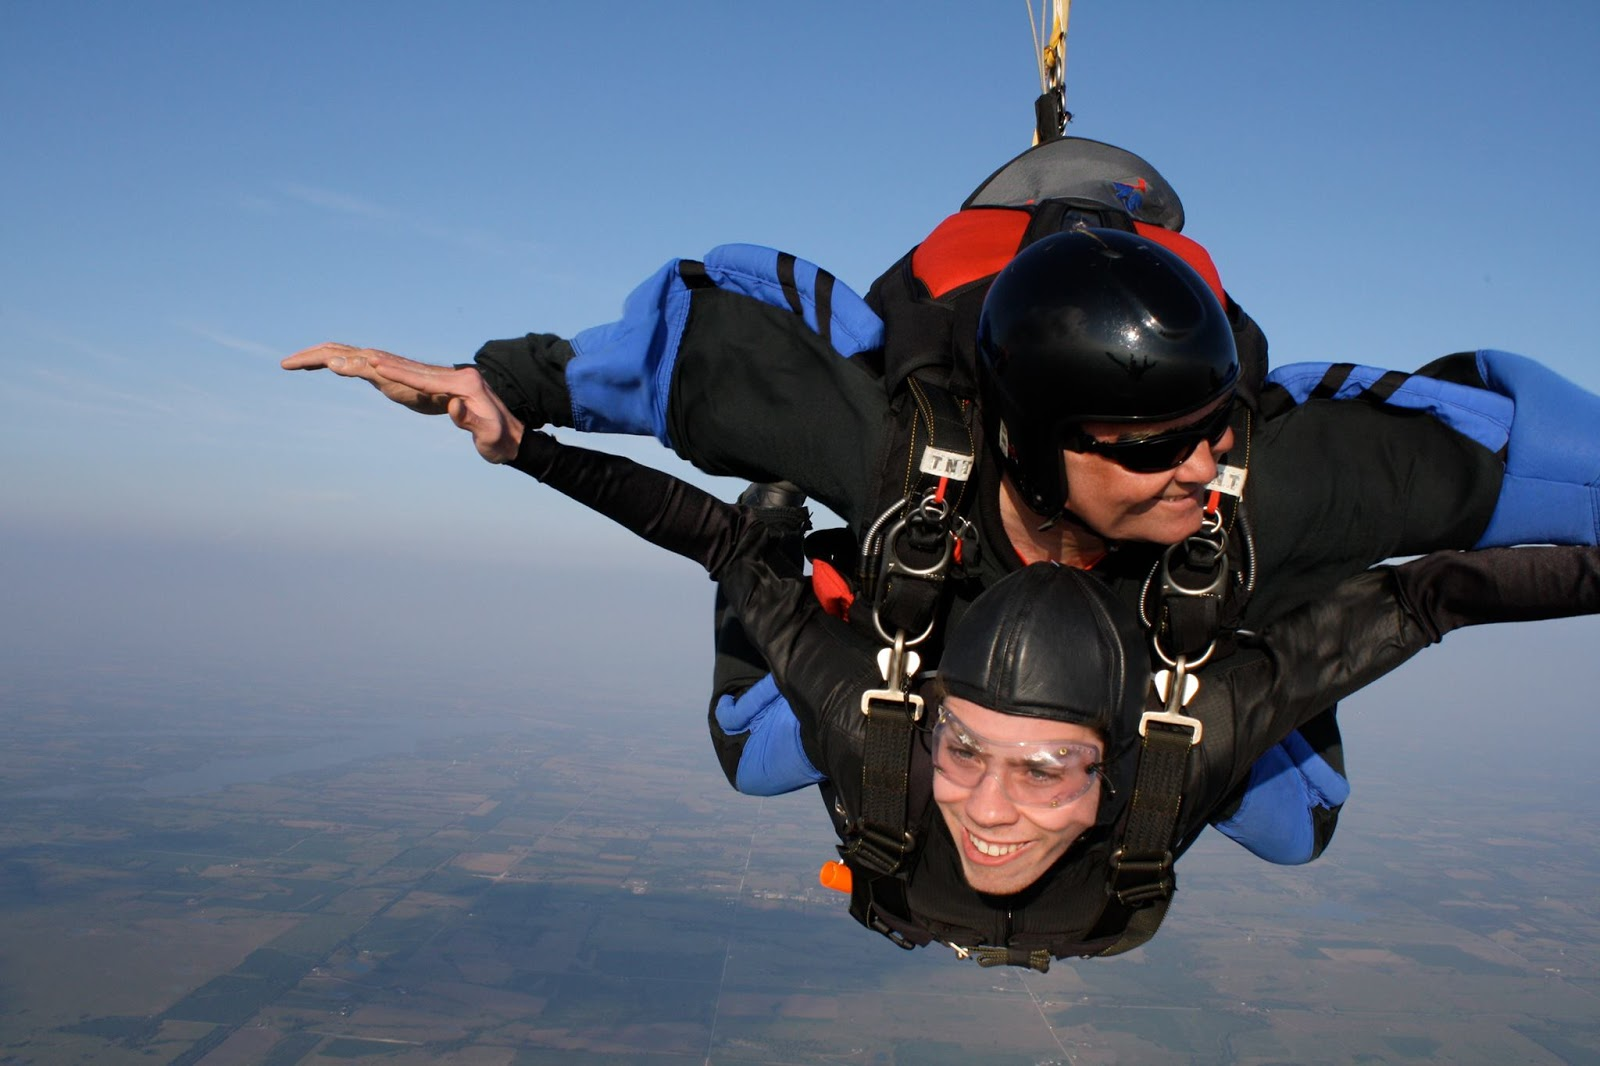 My Boy Skydiving for the First Time